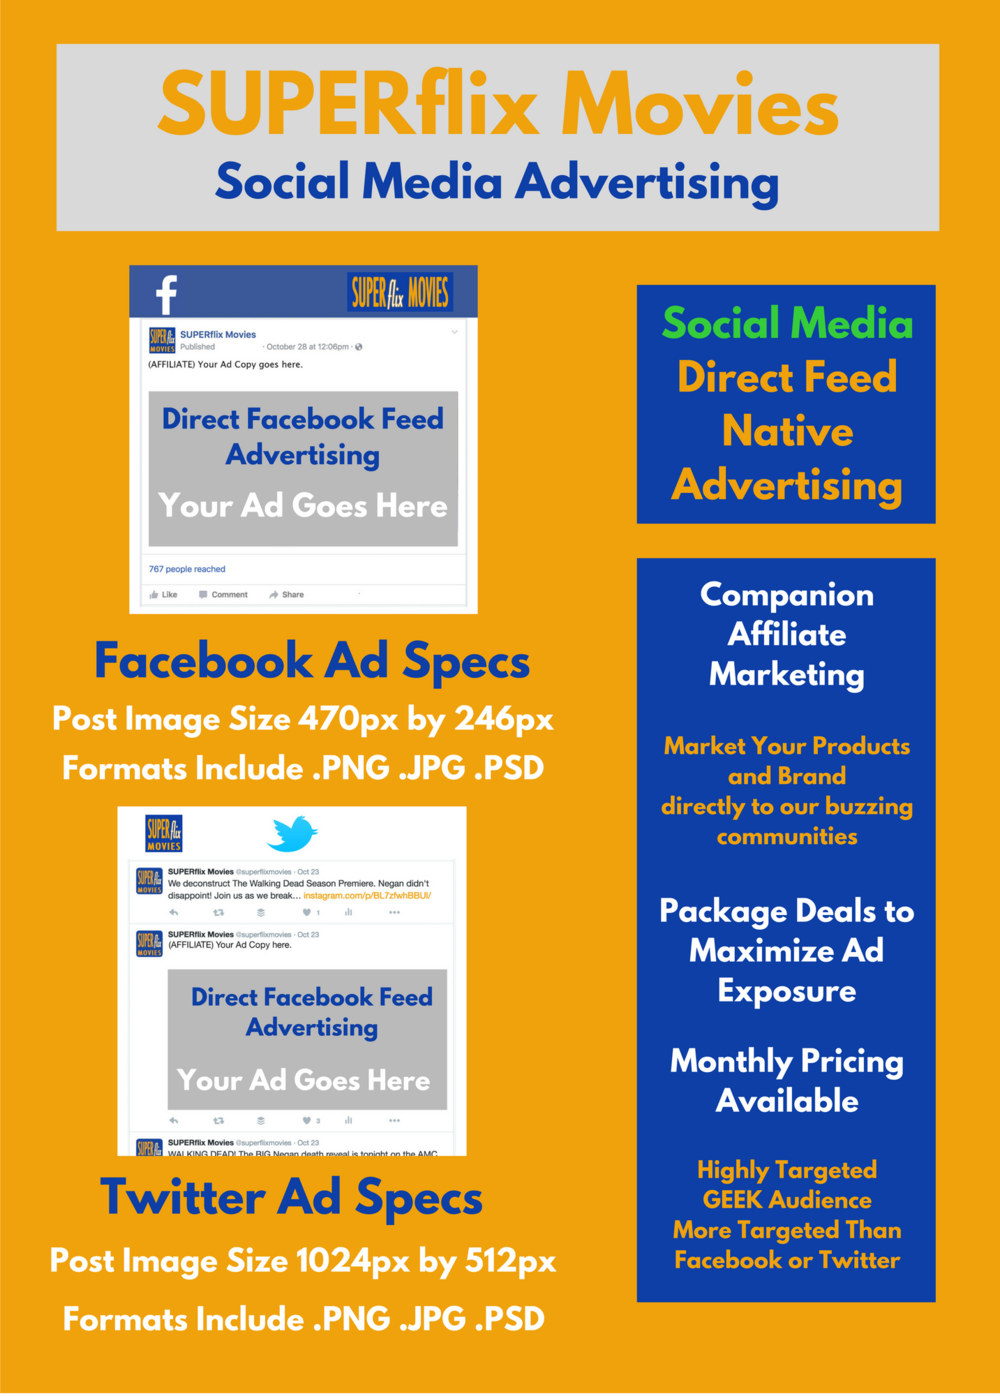 Click the image to view the Social Media Ad Style Sheet